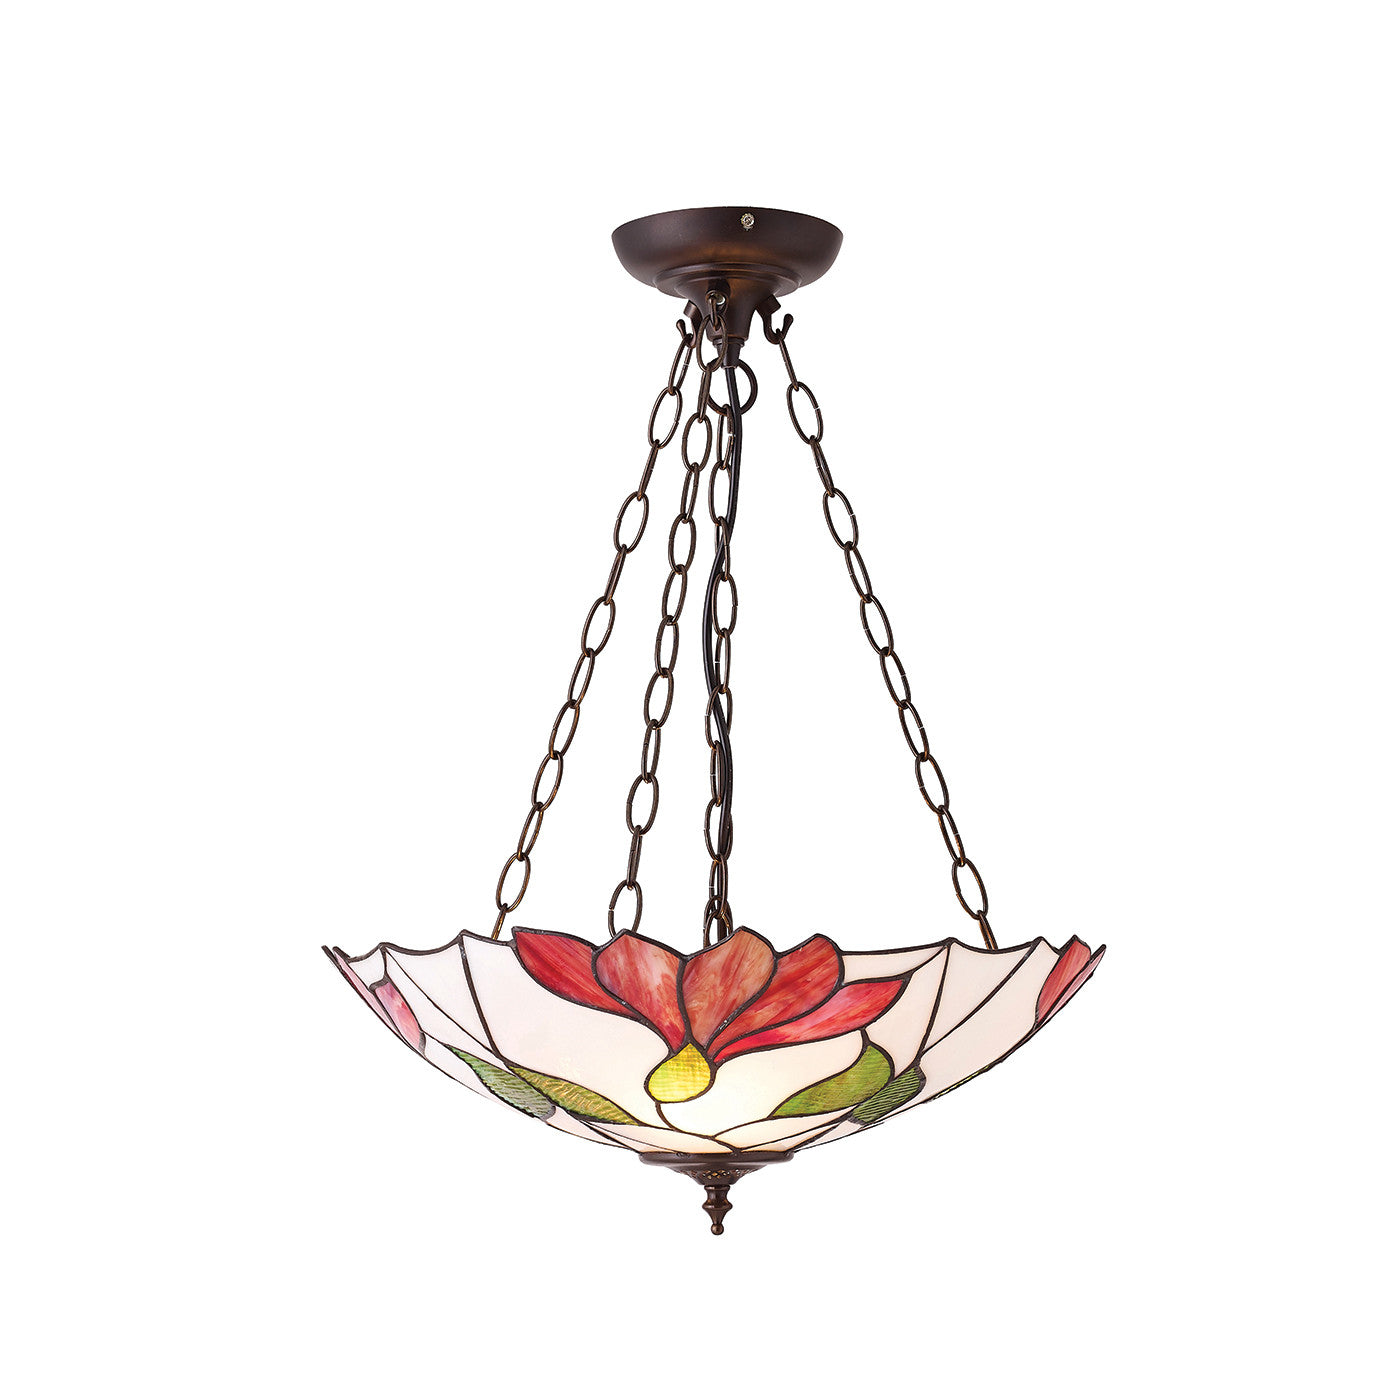 Botanica Inverted 3Lt Pendant Set 60W